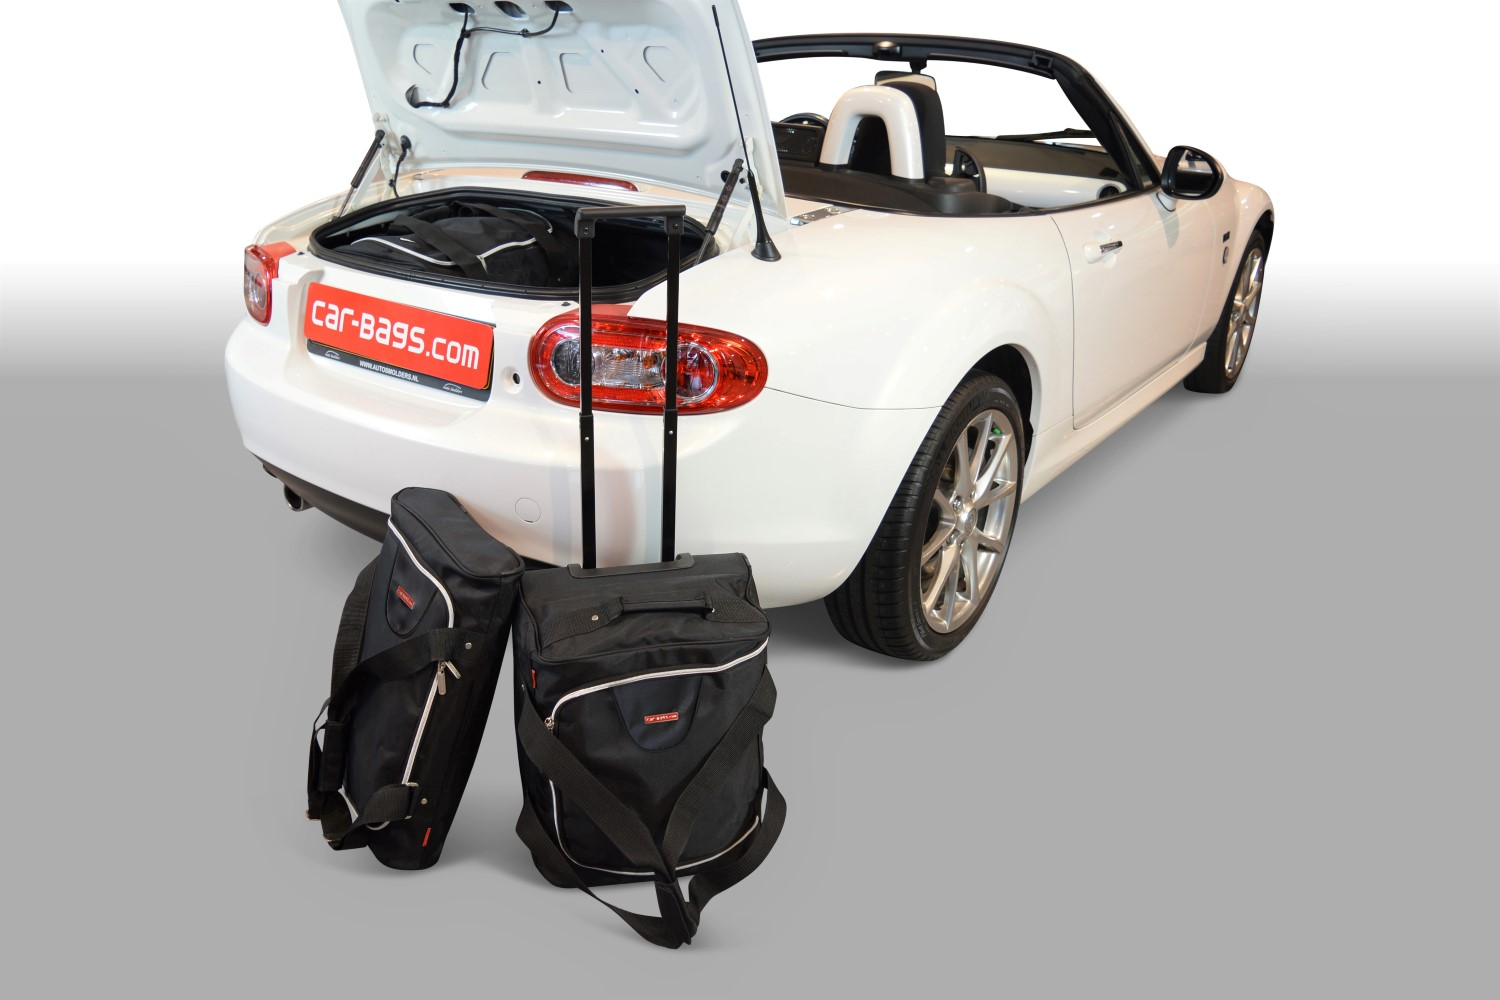 mx 5 mazda mx 5 nc 2005 2015 car bags reistassenset. Black Bedroom Furniture Sets. Home Design Ideas